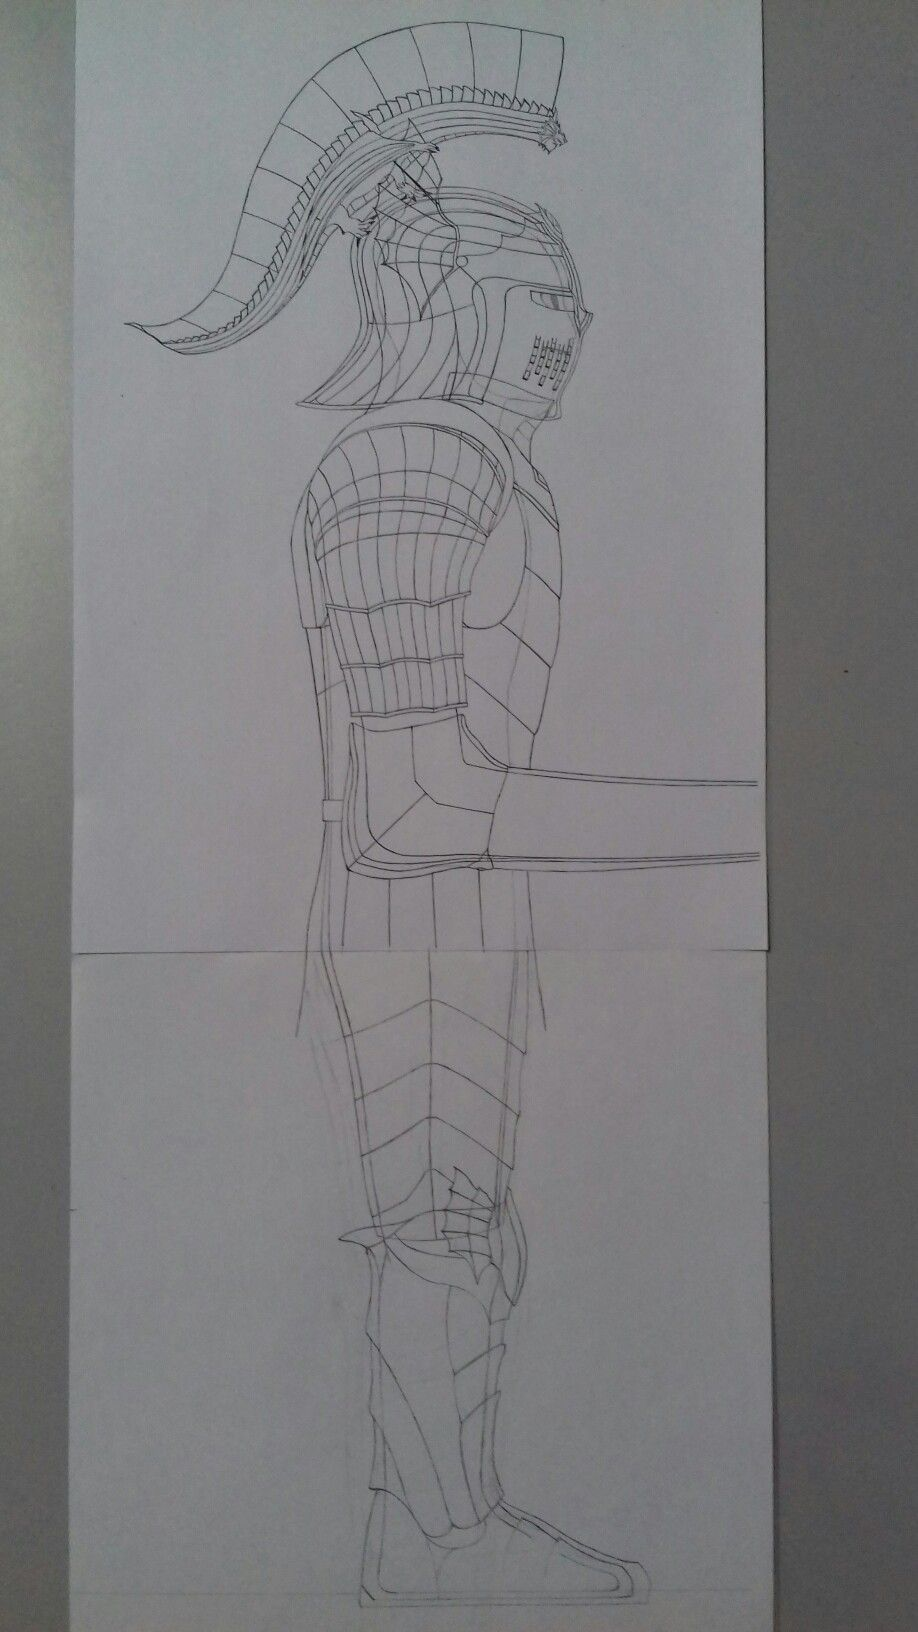 Paladin knight armor with sallet helmet with dragon ear wings and